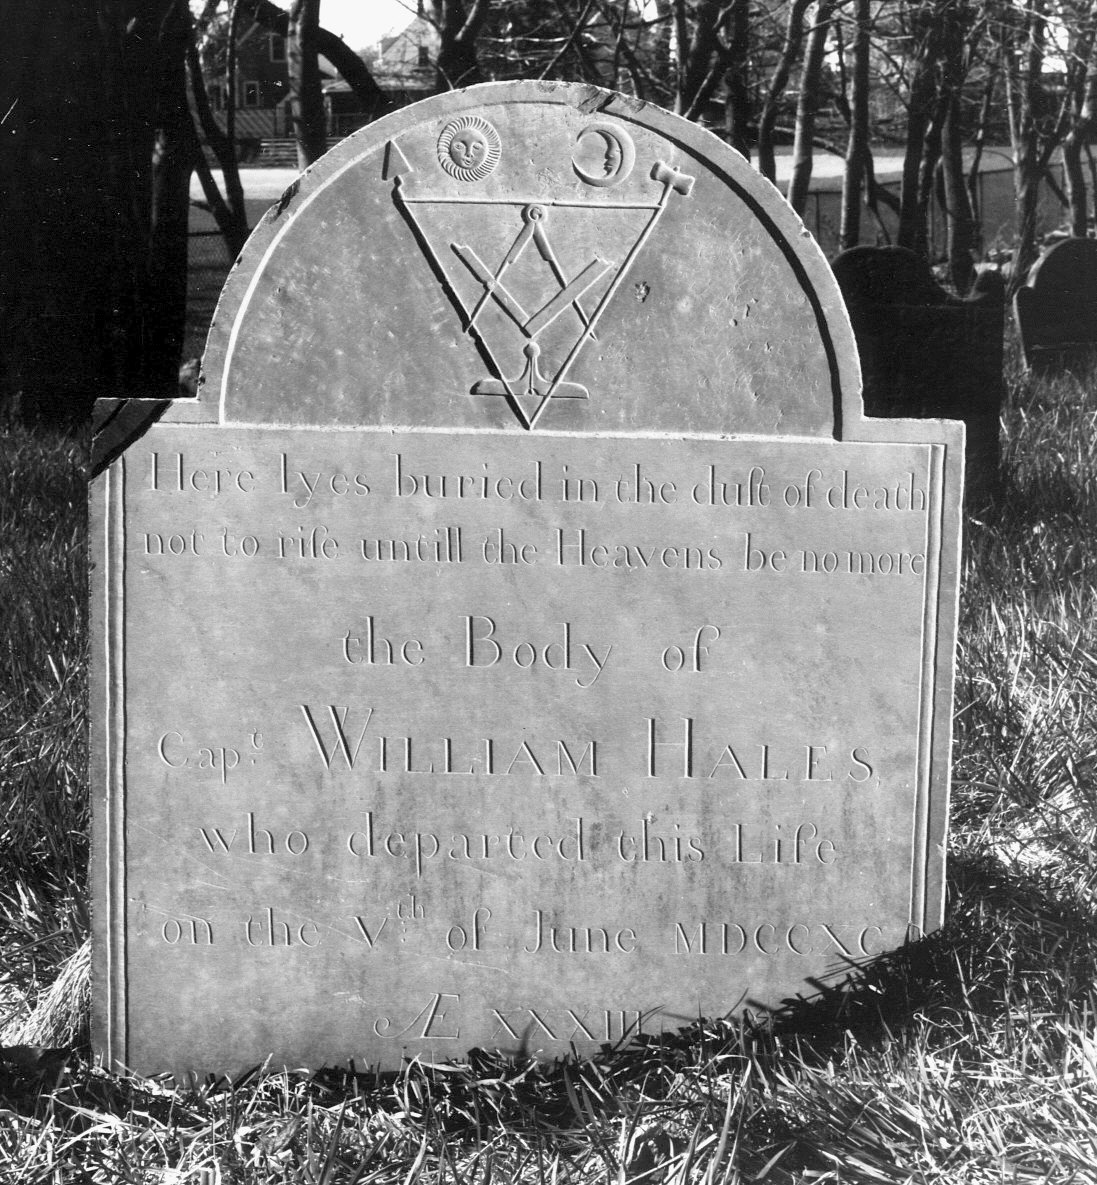 Hales, William